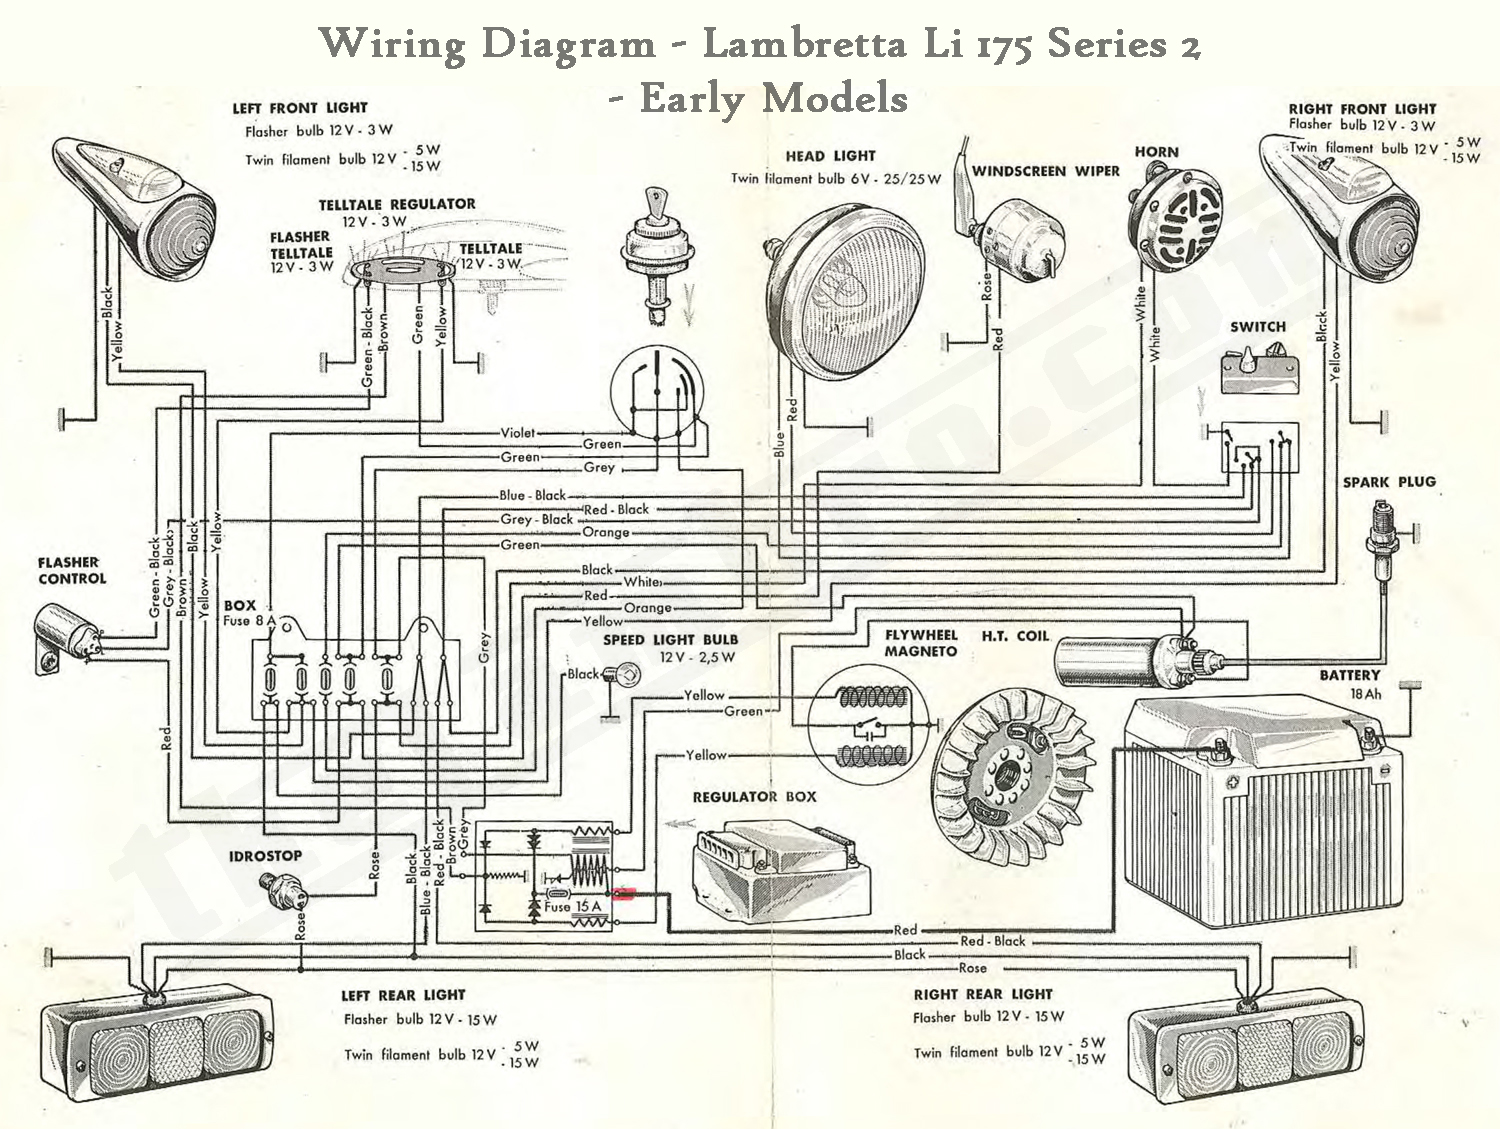 thelambro com electrics rh thelambro com Light Switch Wiring Diagram Basic Light Wiring Diagrams